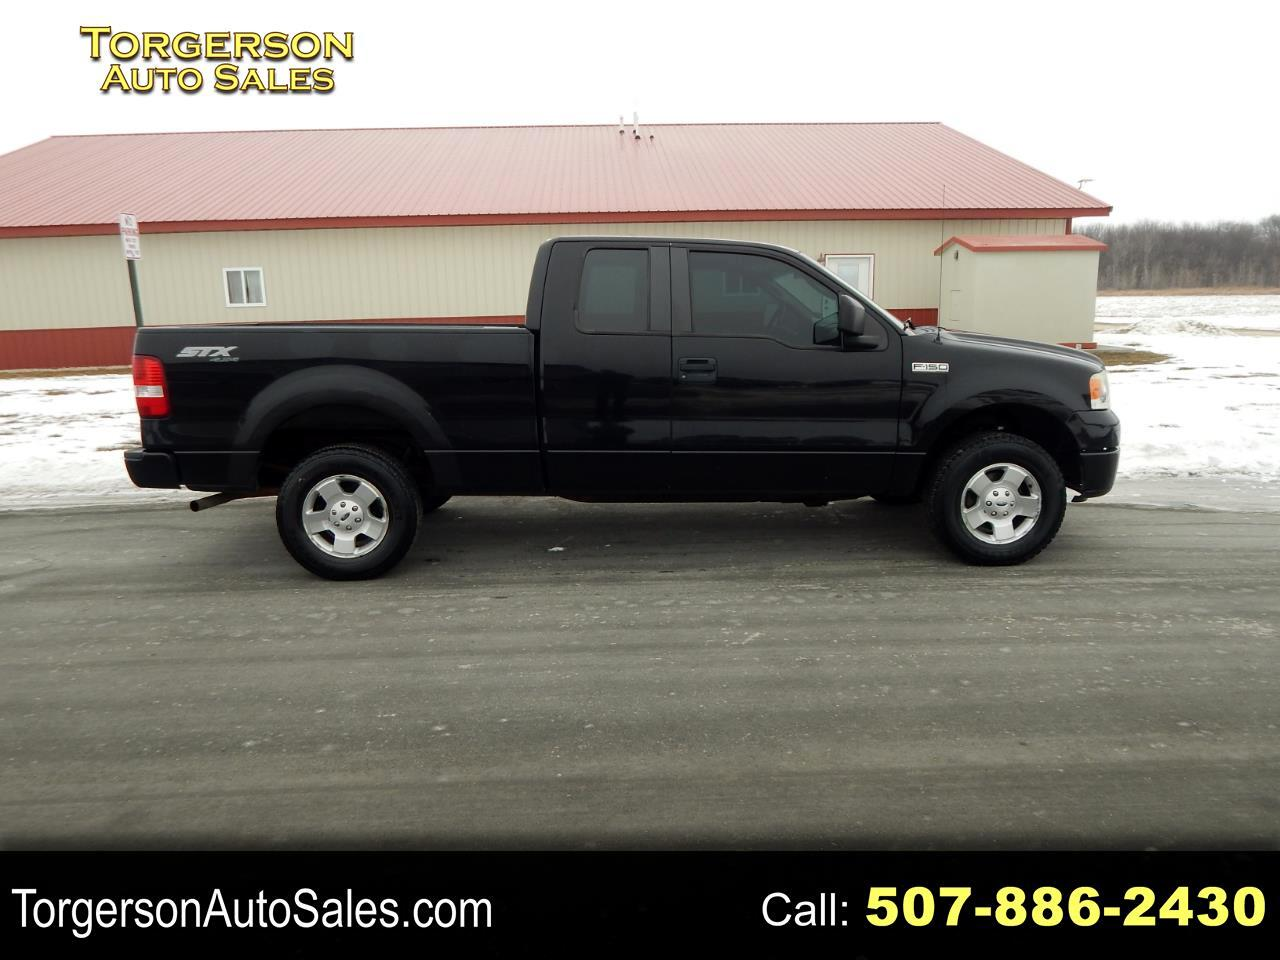 Ford F-150 STX SuperCab 4WD 2007